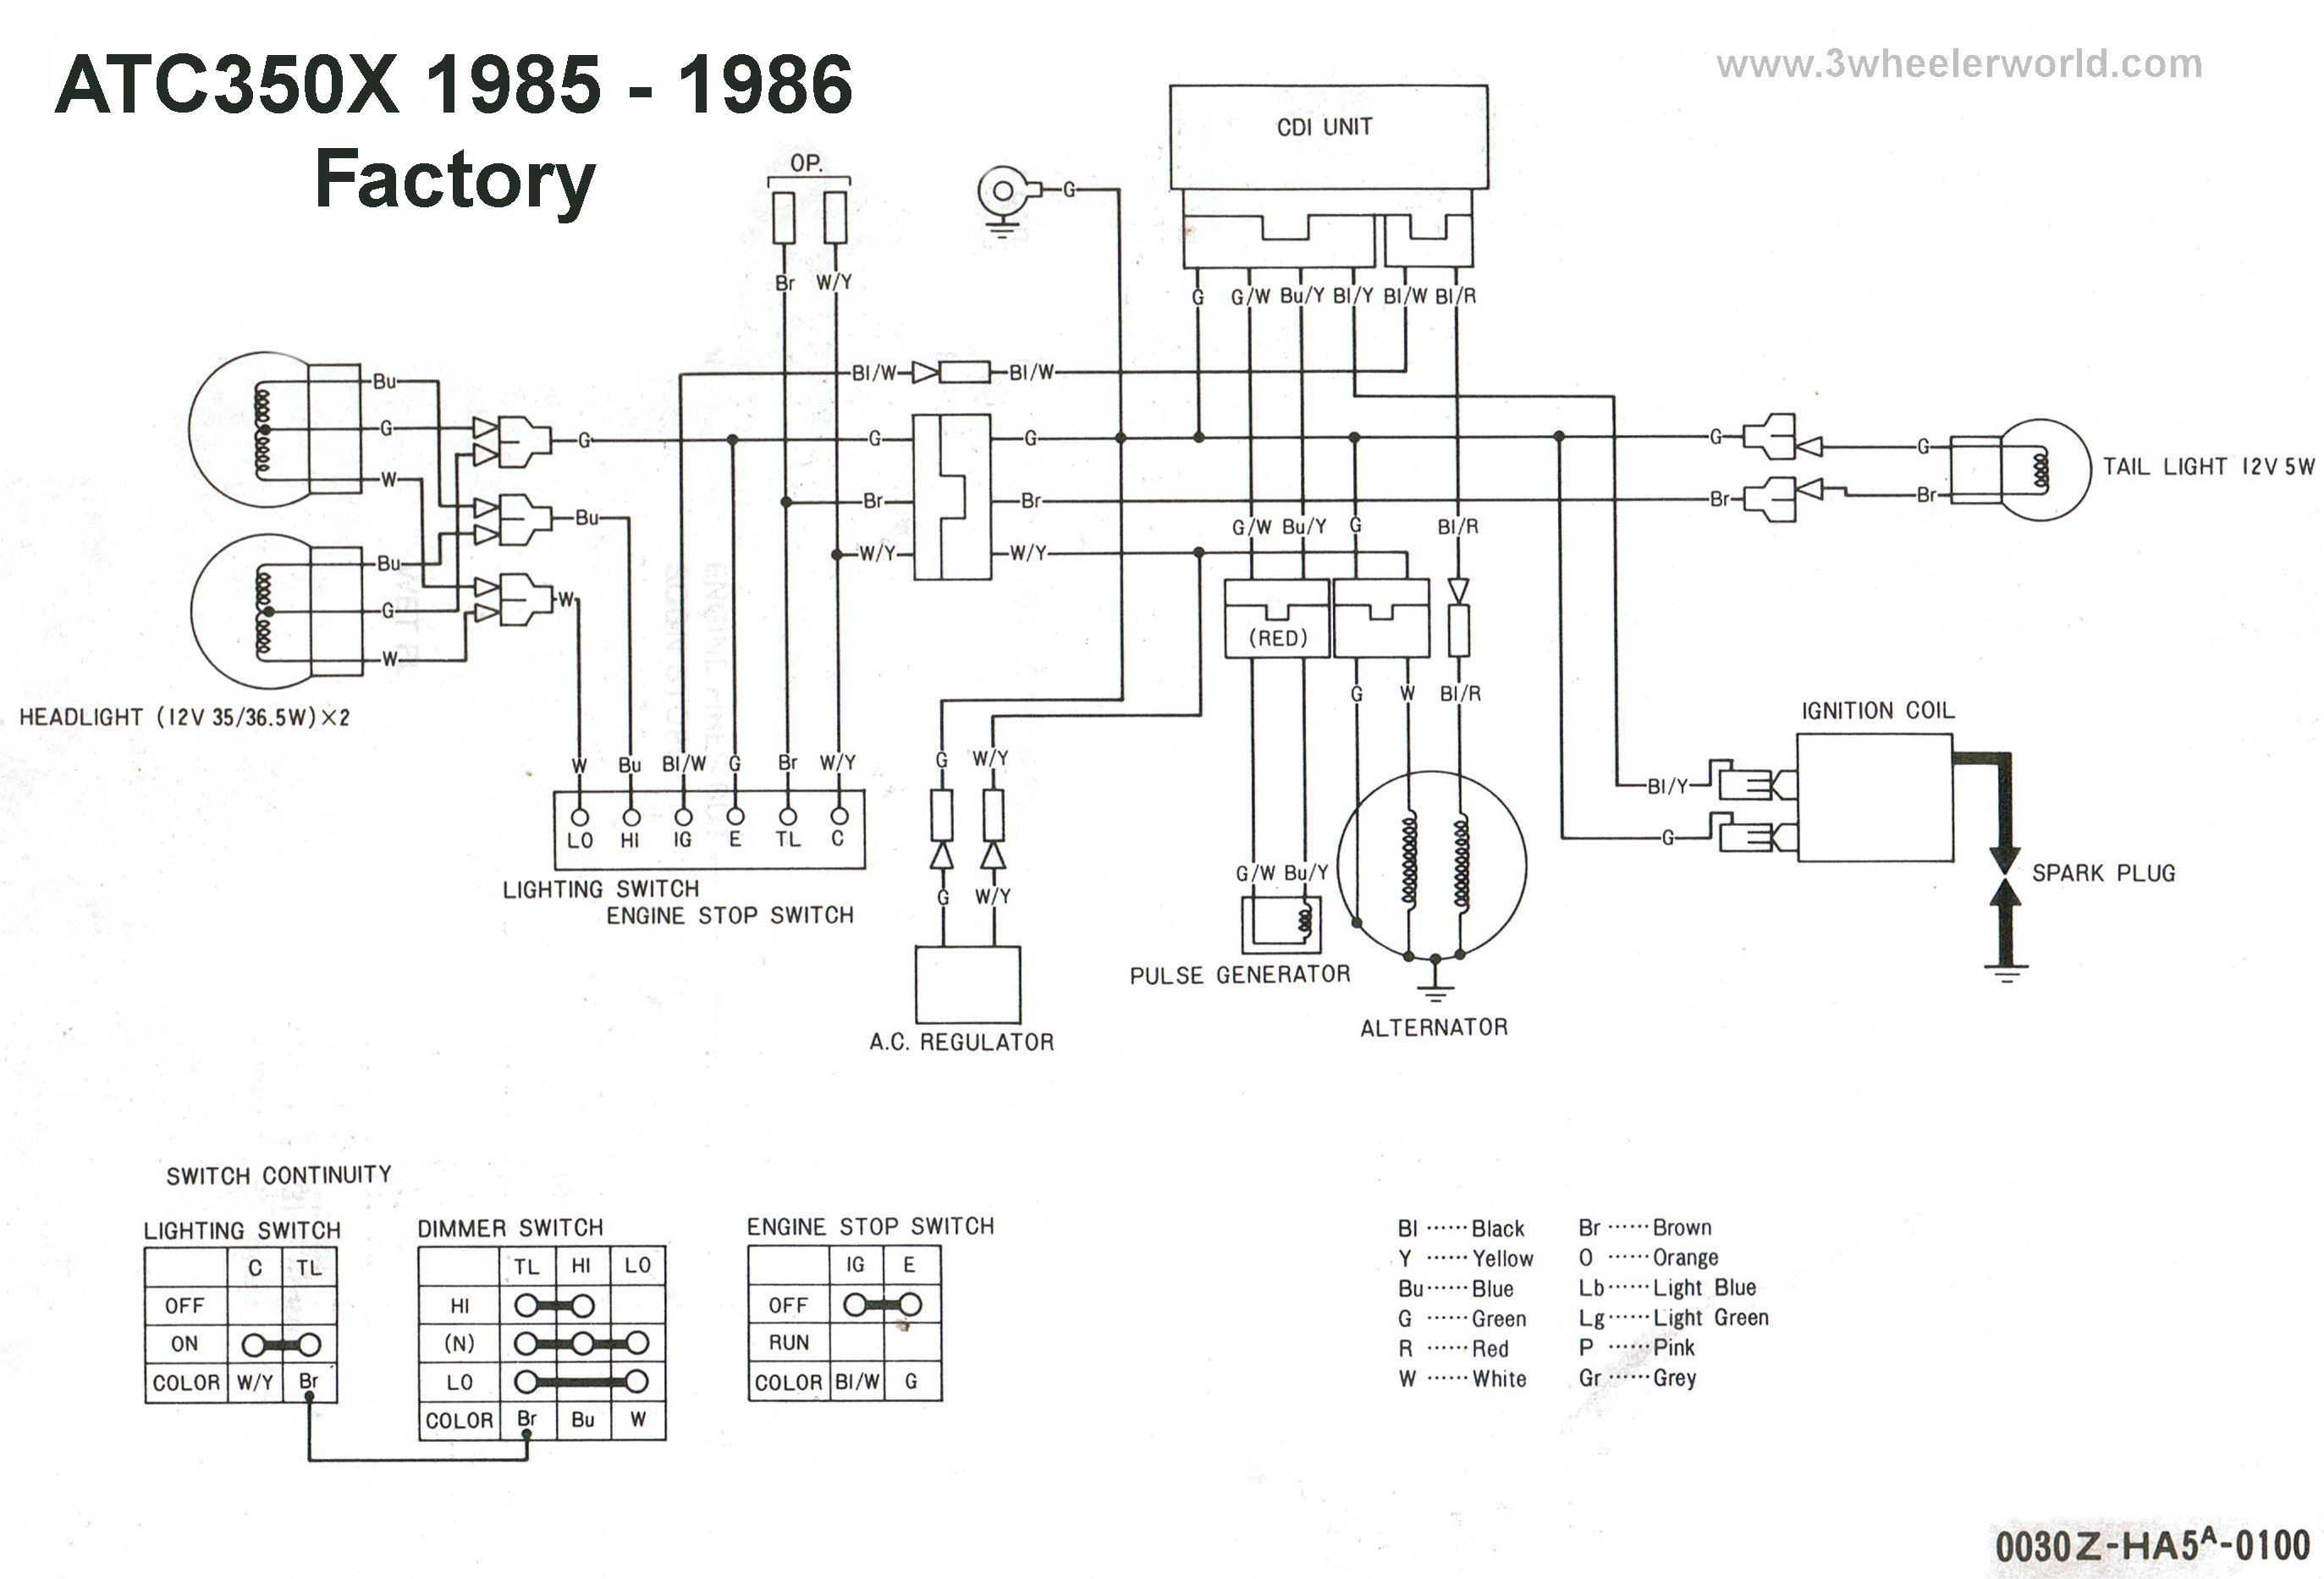 ATC350Xx85Thru86 honda 250x wiring diagram on honda download wirning diagrams yamaha raptor 660 wiring diagram at webbmarketing.co